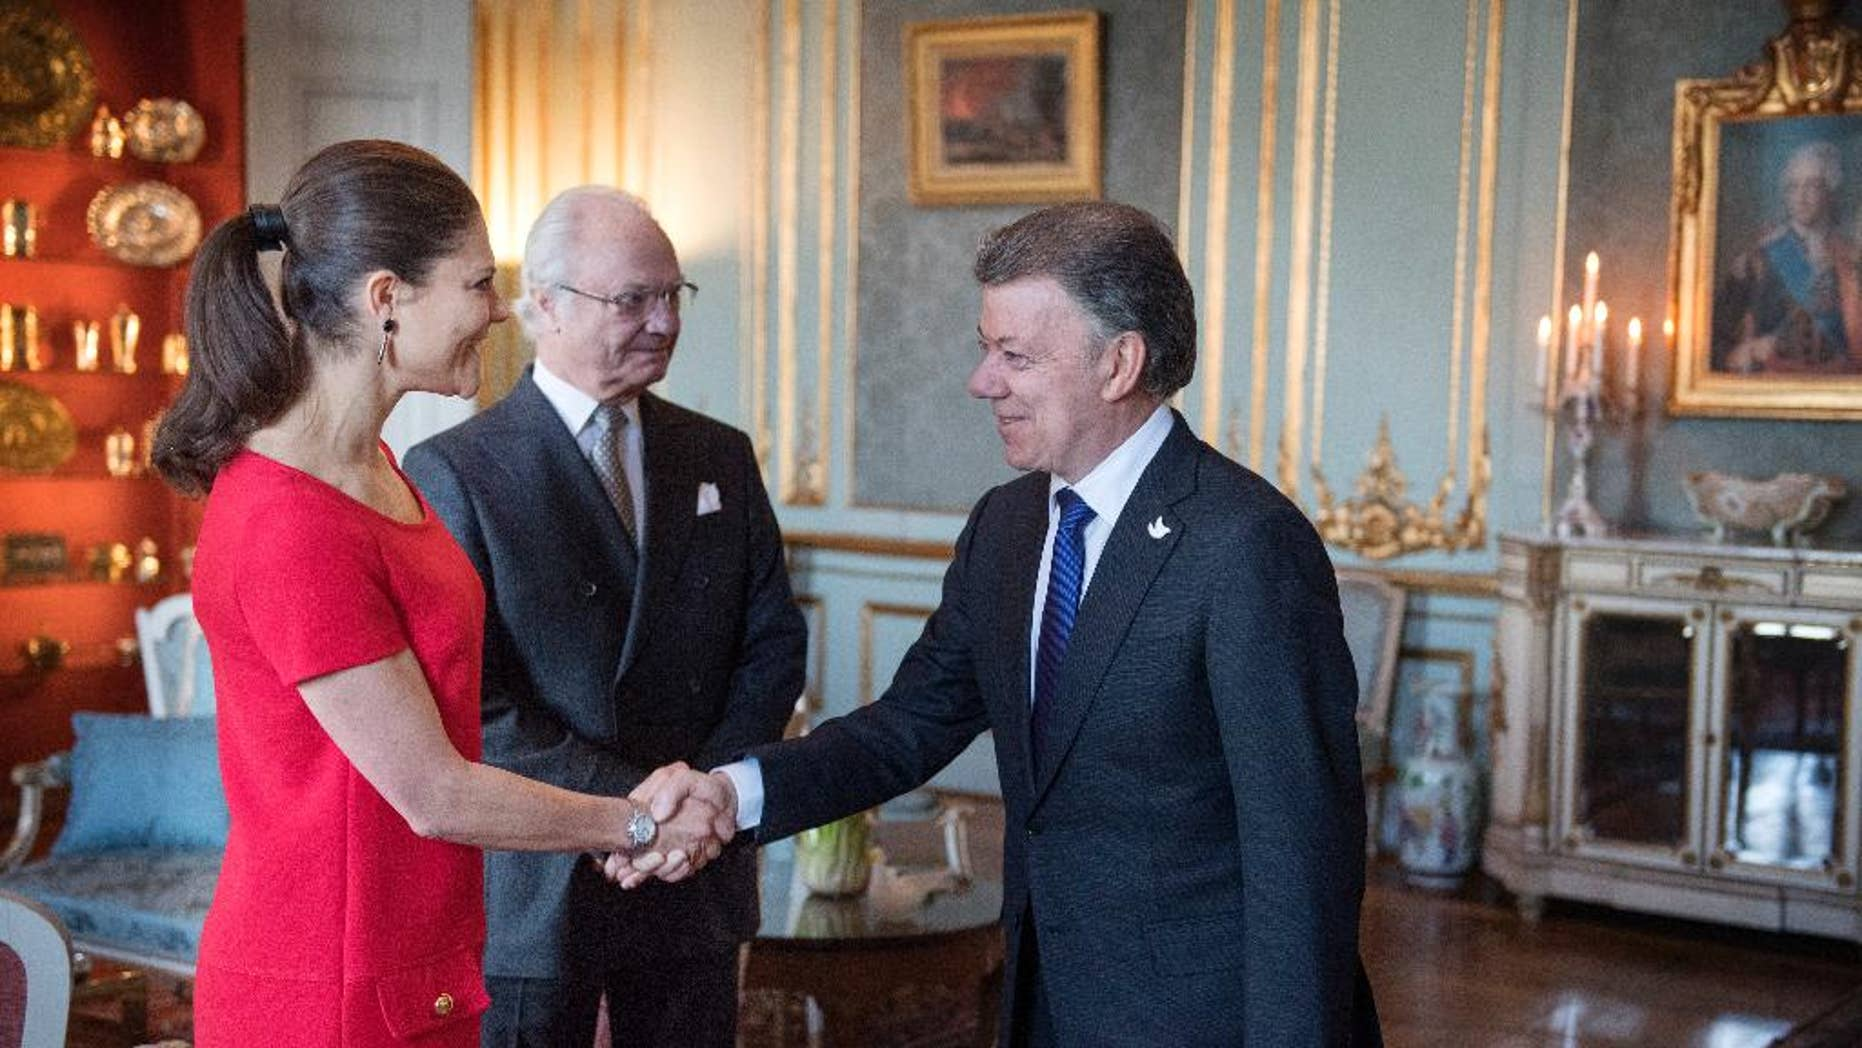 """Sweden's Crown Princess Victoria, left, and King Carl Gustaf welcome Colombian president Juan Manuel Santos, right, during a audience at The Royal Palace in Stockholm, Monday, Dec. 12, 2016. Colombian President Juan Manuel Santos accepted the Nobel Peace Prize on Saturday, saying it helped his country achieve the """"impossible dream"""" of ending a half-century-long civil war. (Jessica Gow/TT News Agency via AP)"""